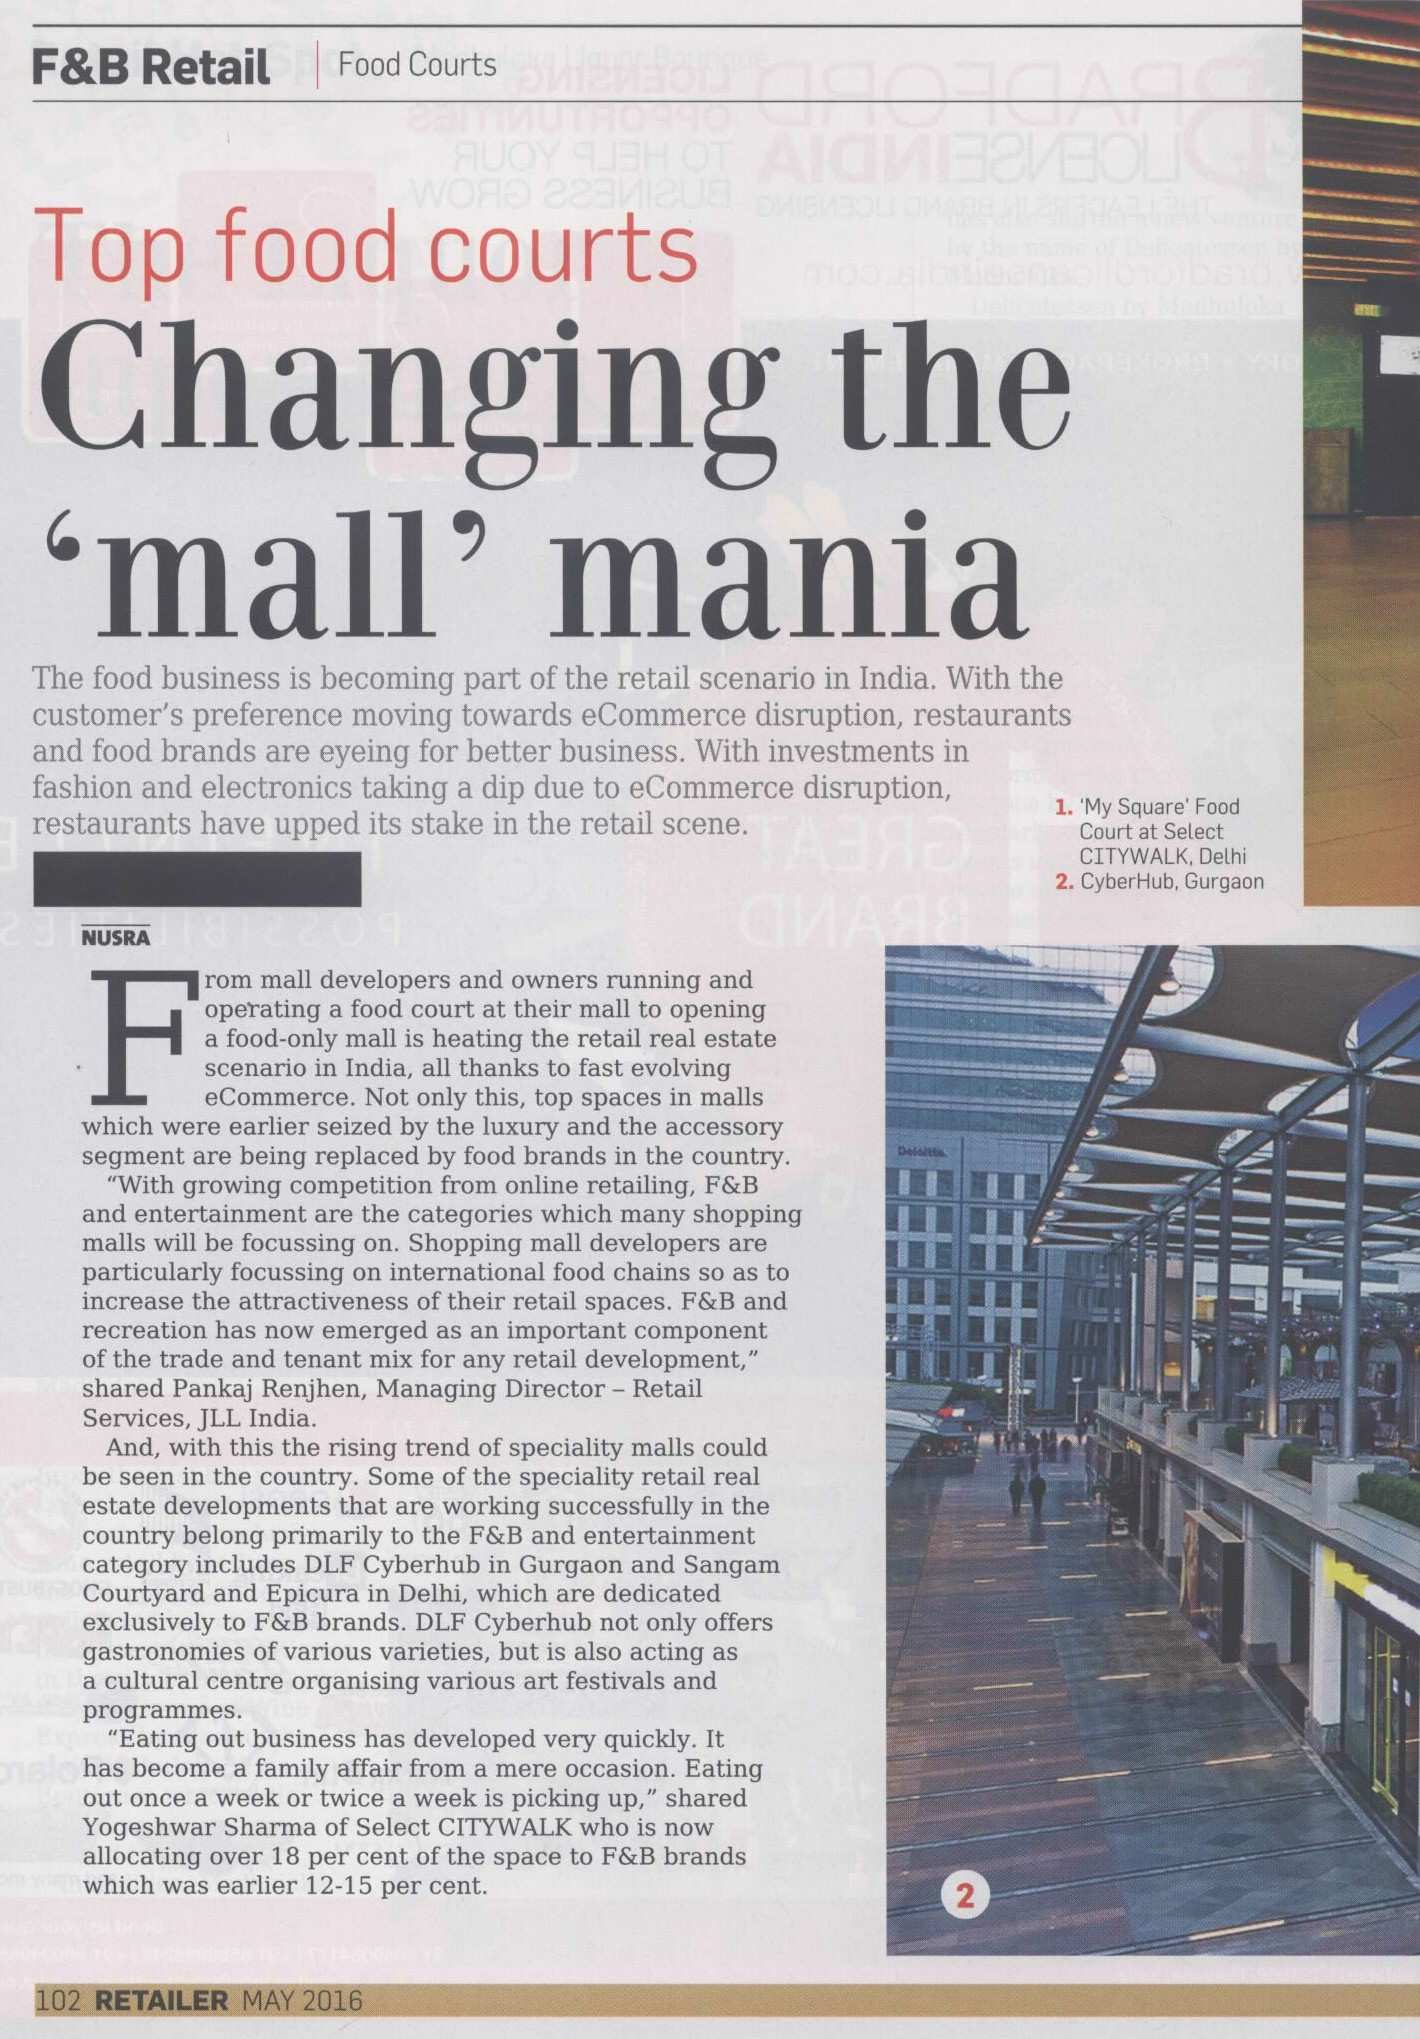 Changing the mall Mania